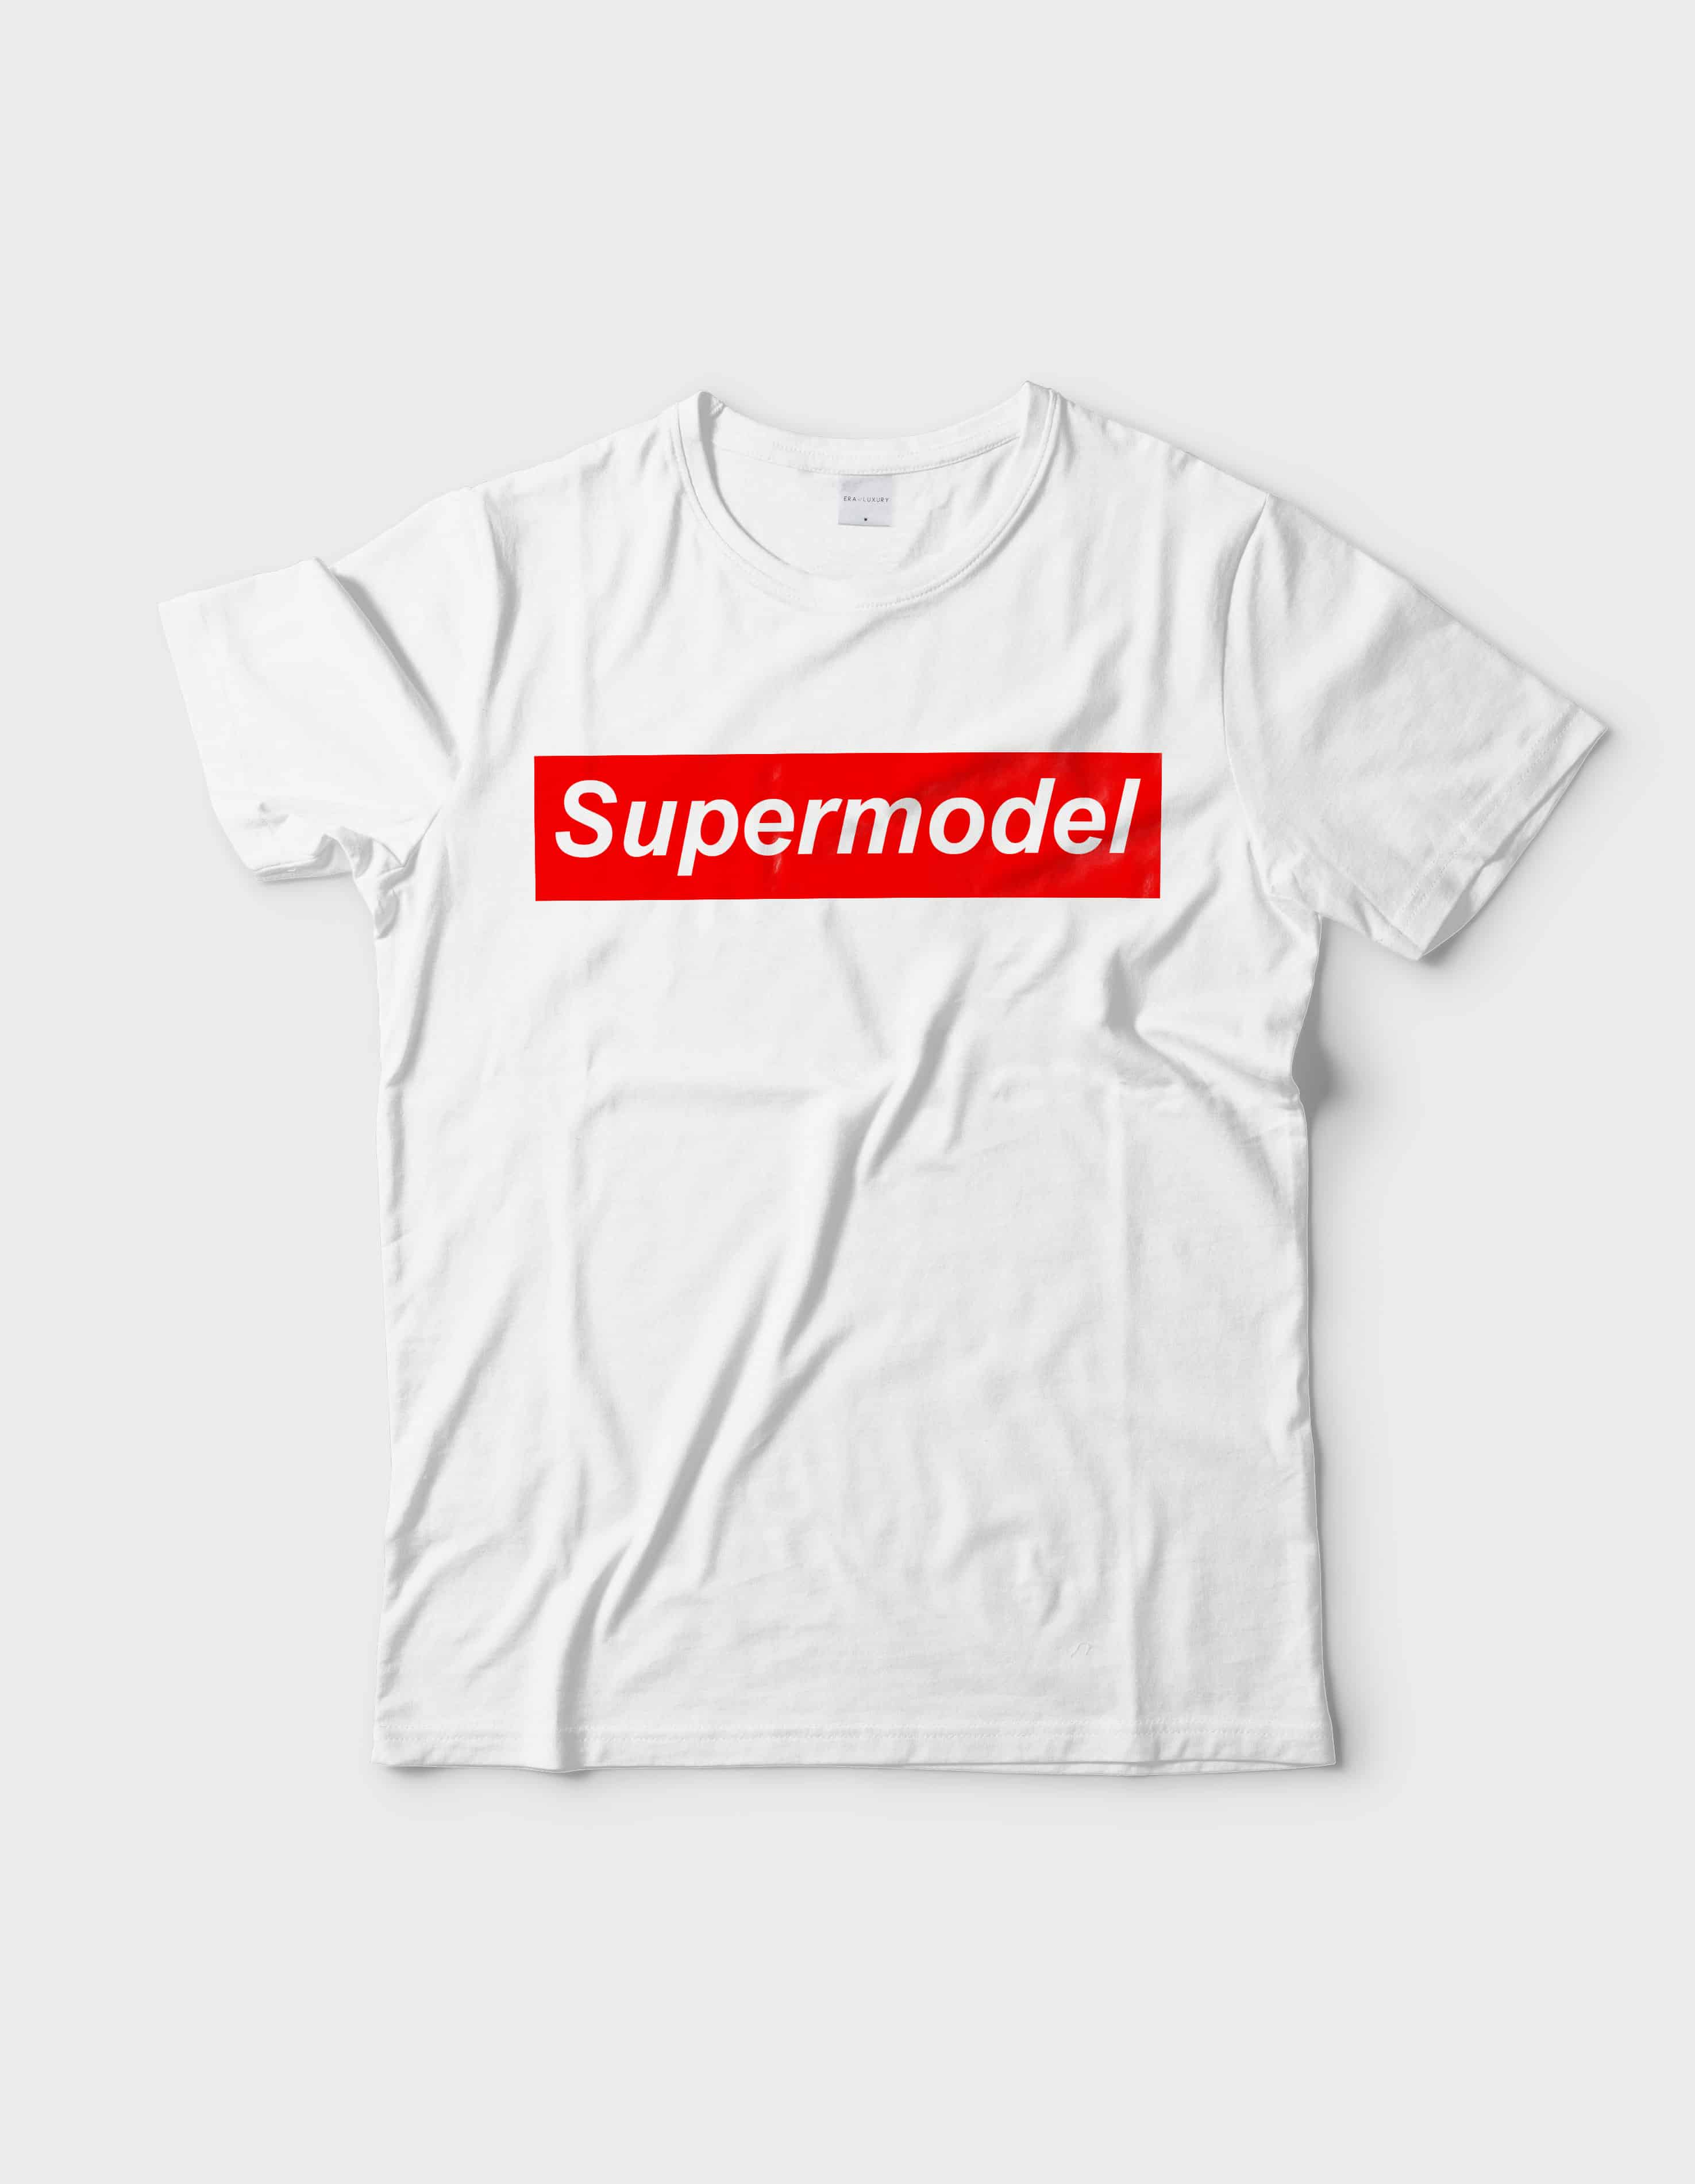 Supermodel Graphic White tee